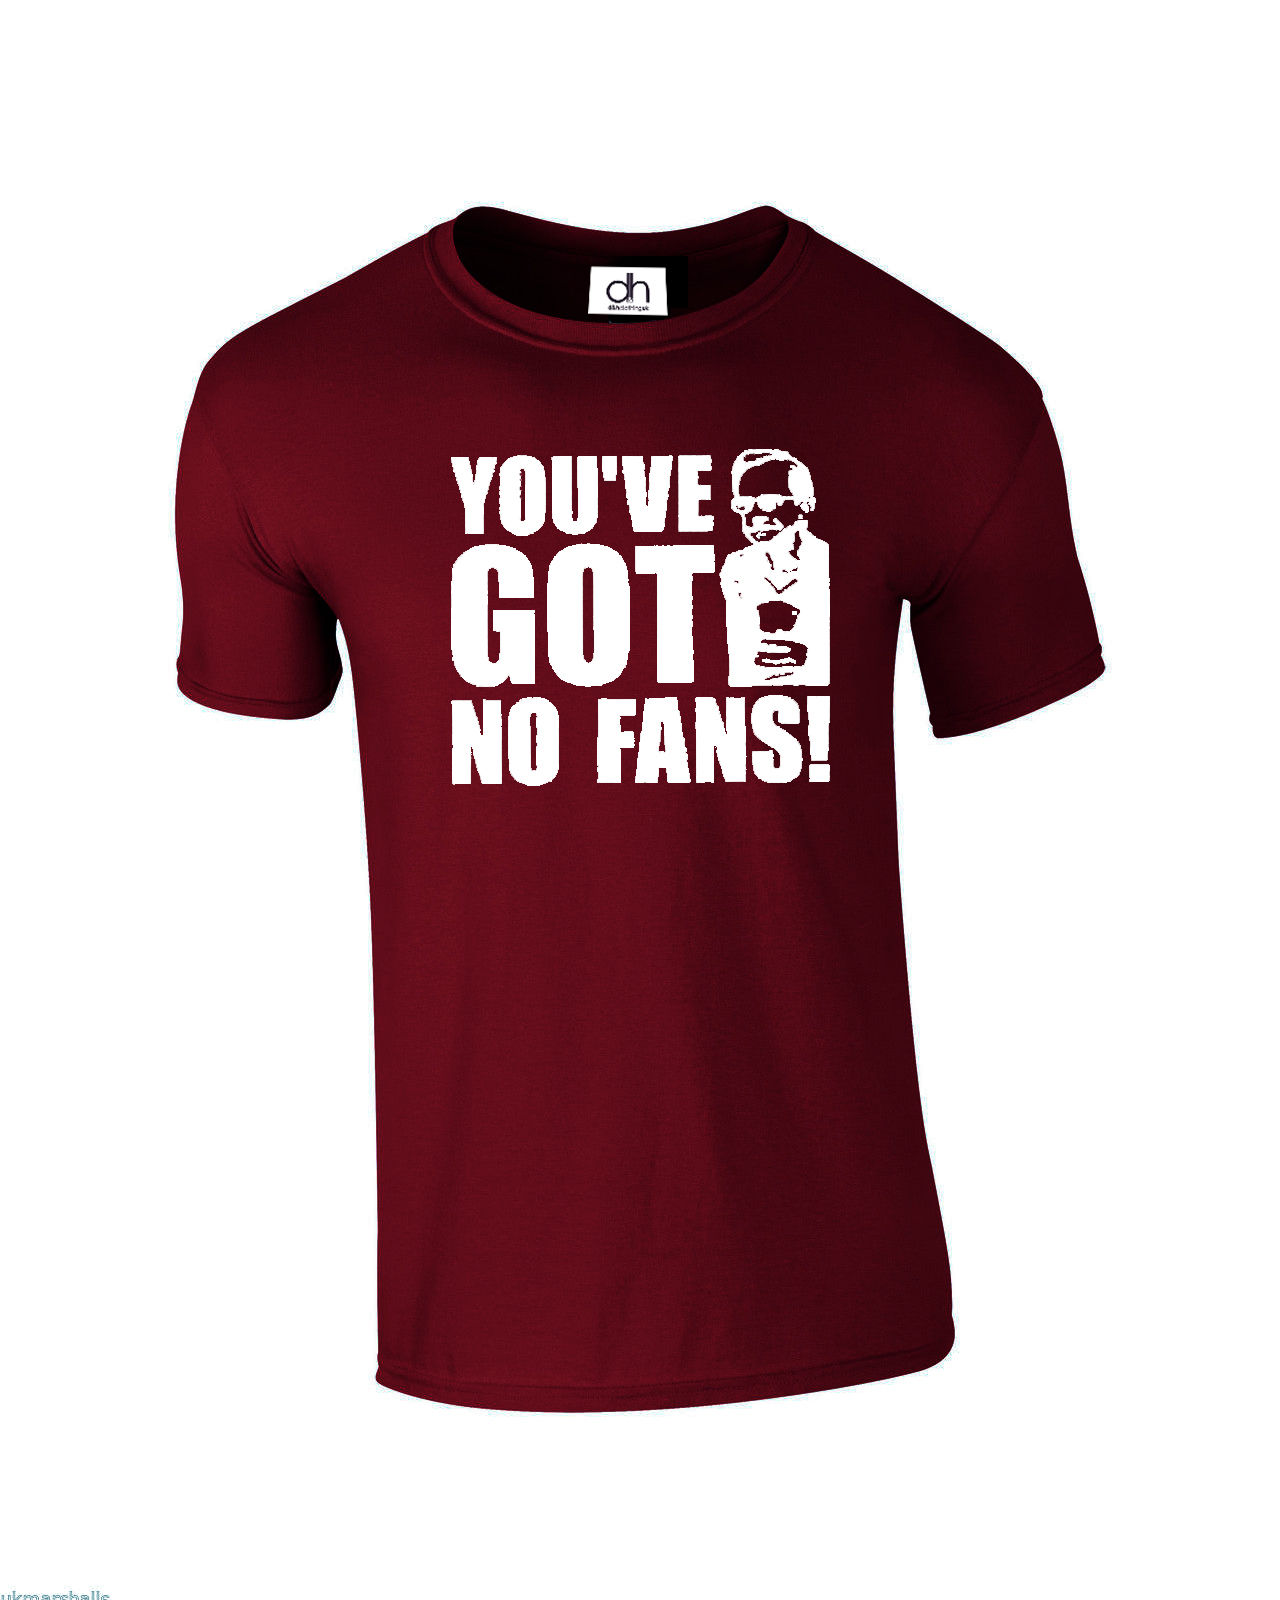 Wealdstone Raider You 39 ve Got No Fans Funny YouTube Vine Top XS 3XL FANS T SHIRT New T Shirts Funny Tops in T Shirts from Men 39 s Clothing